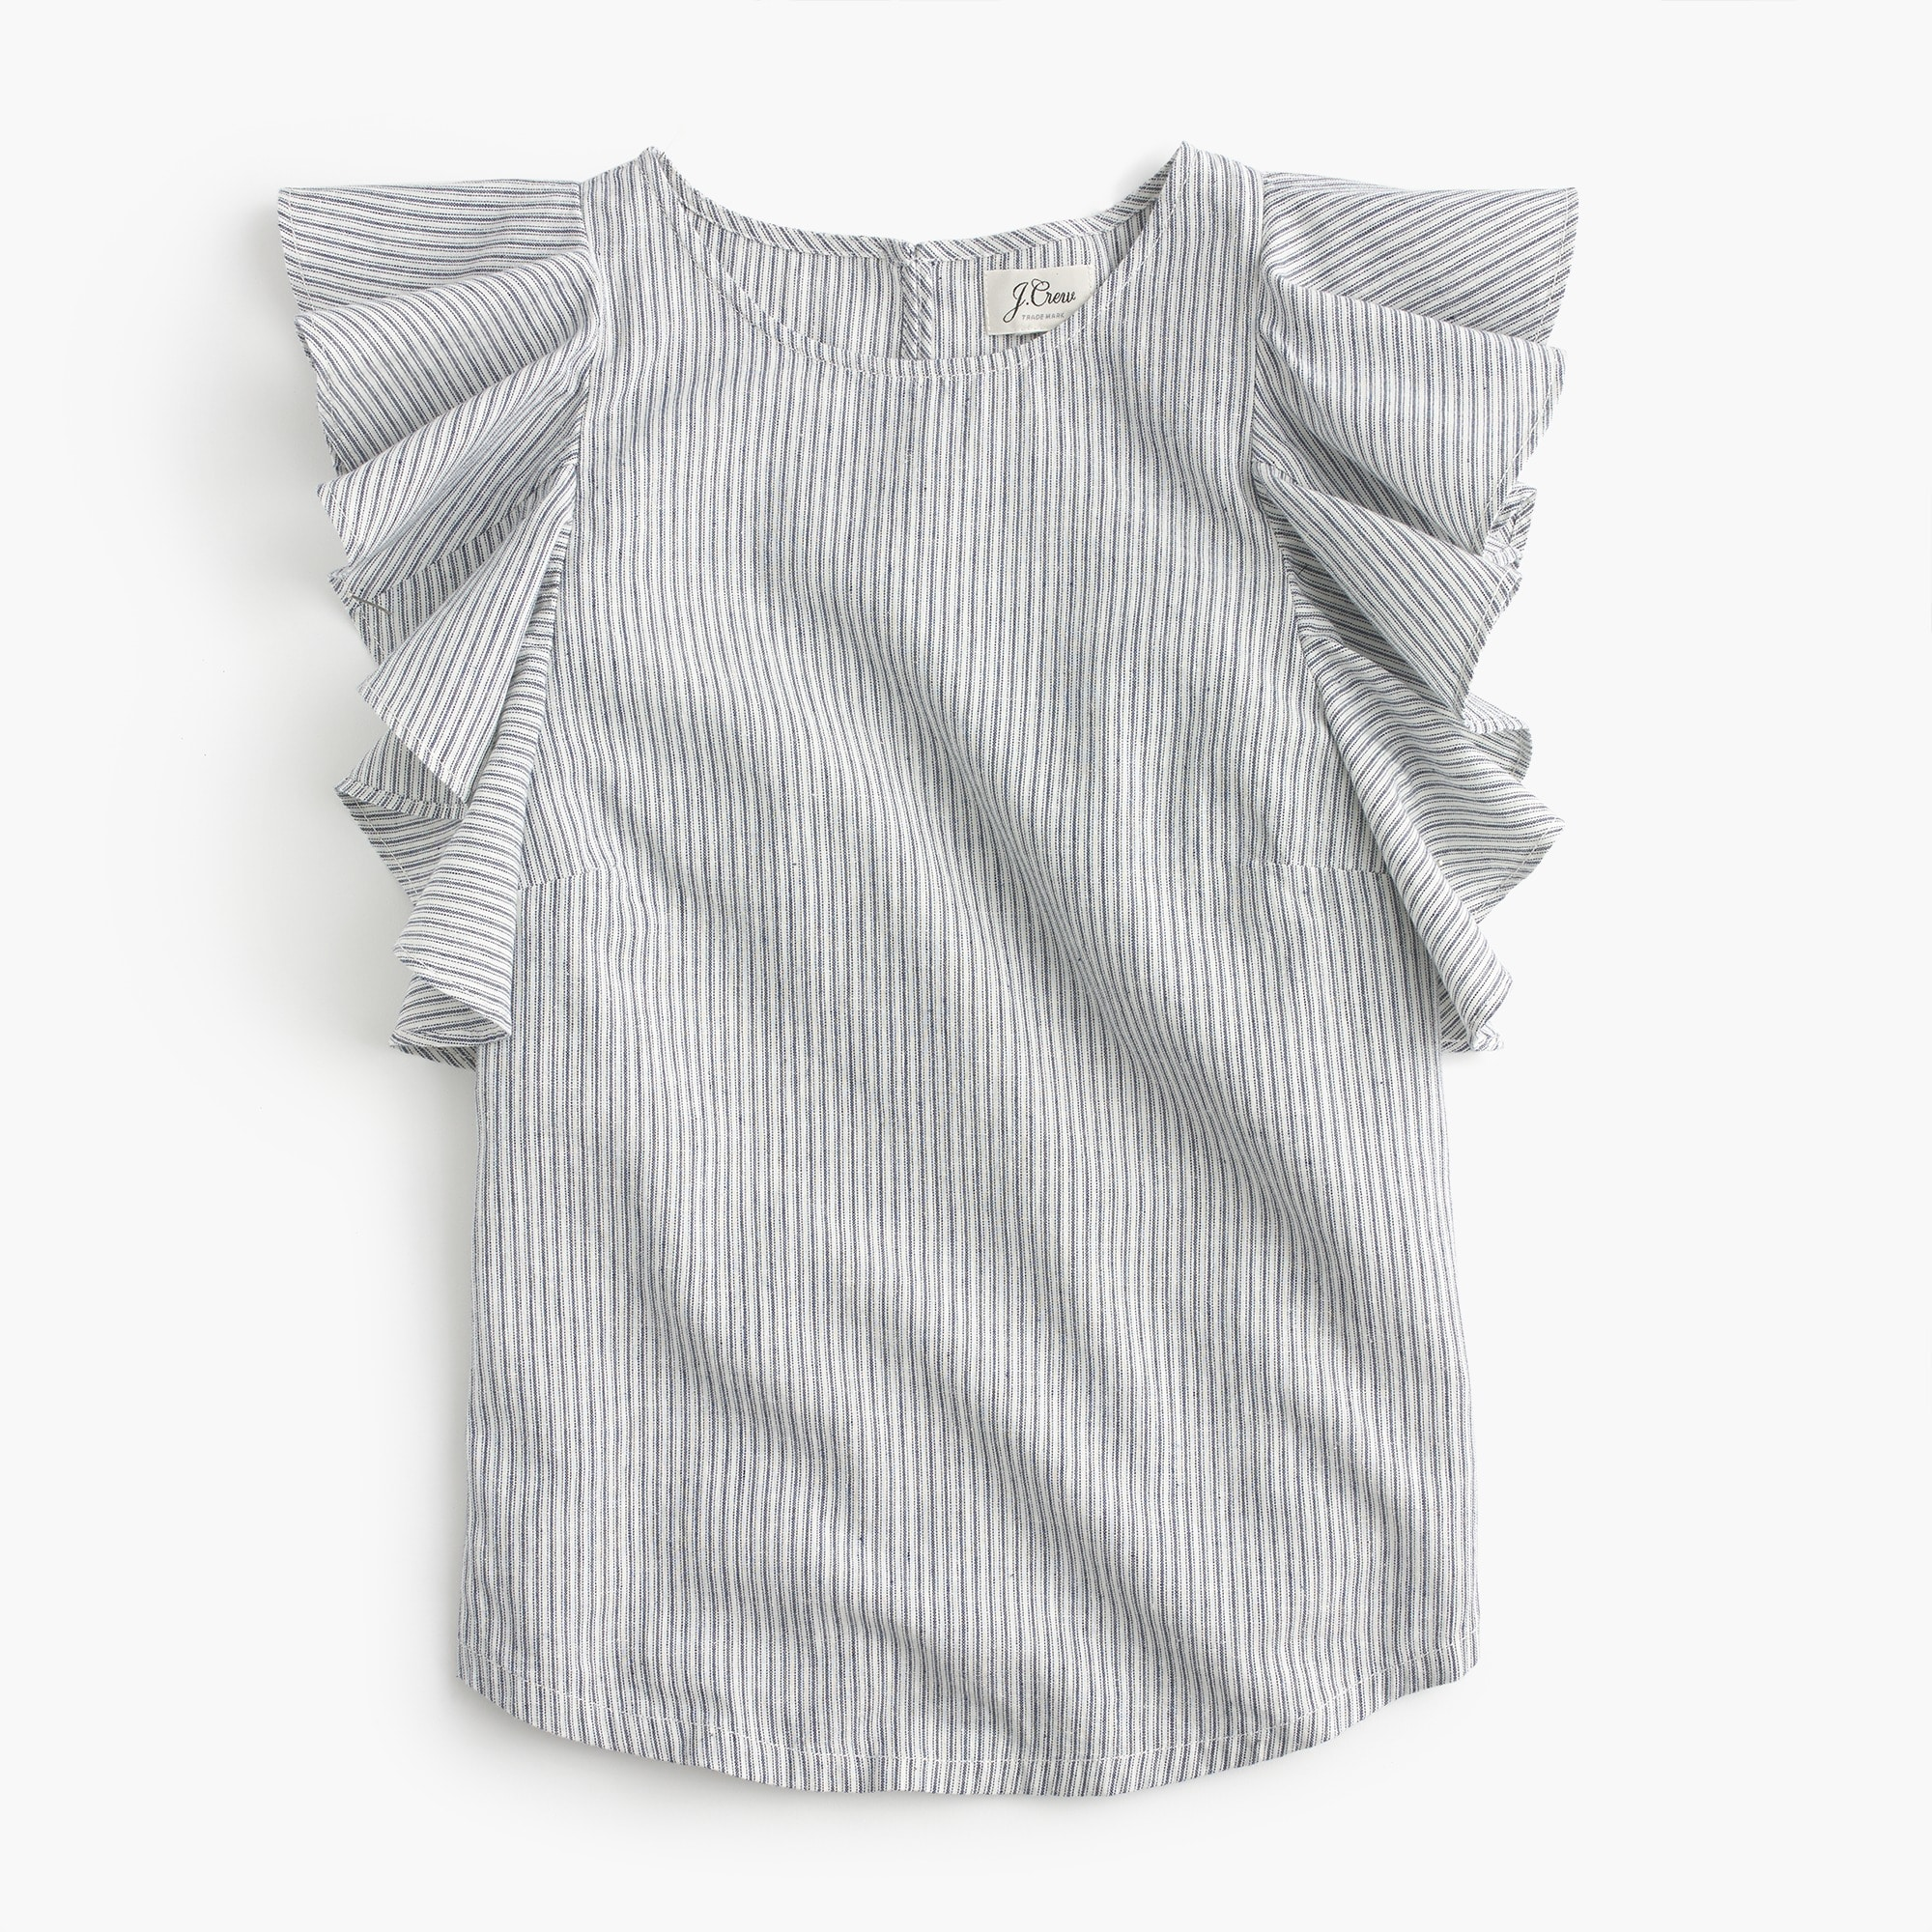 Image 6 for Petite ruffle top in stripe